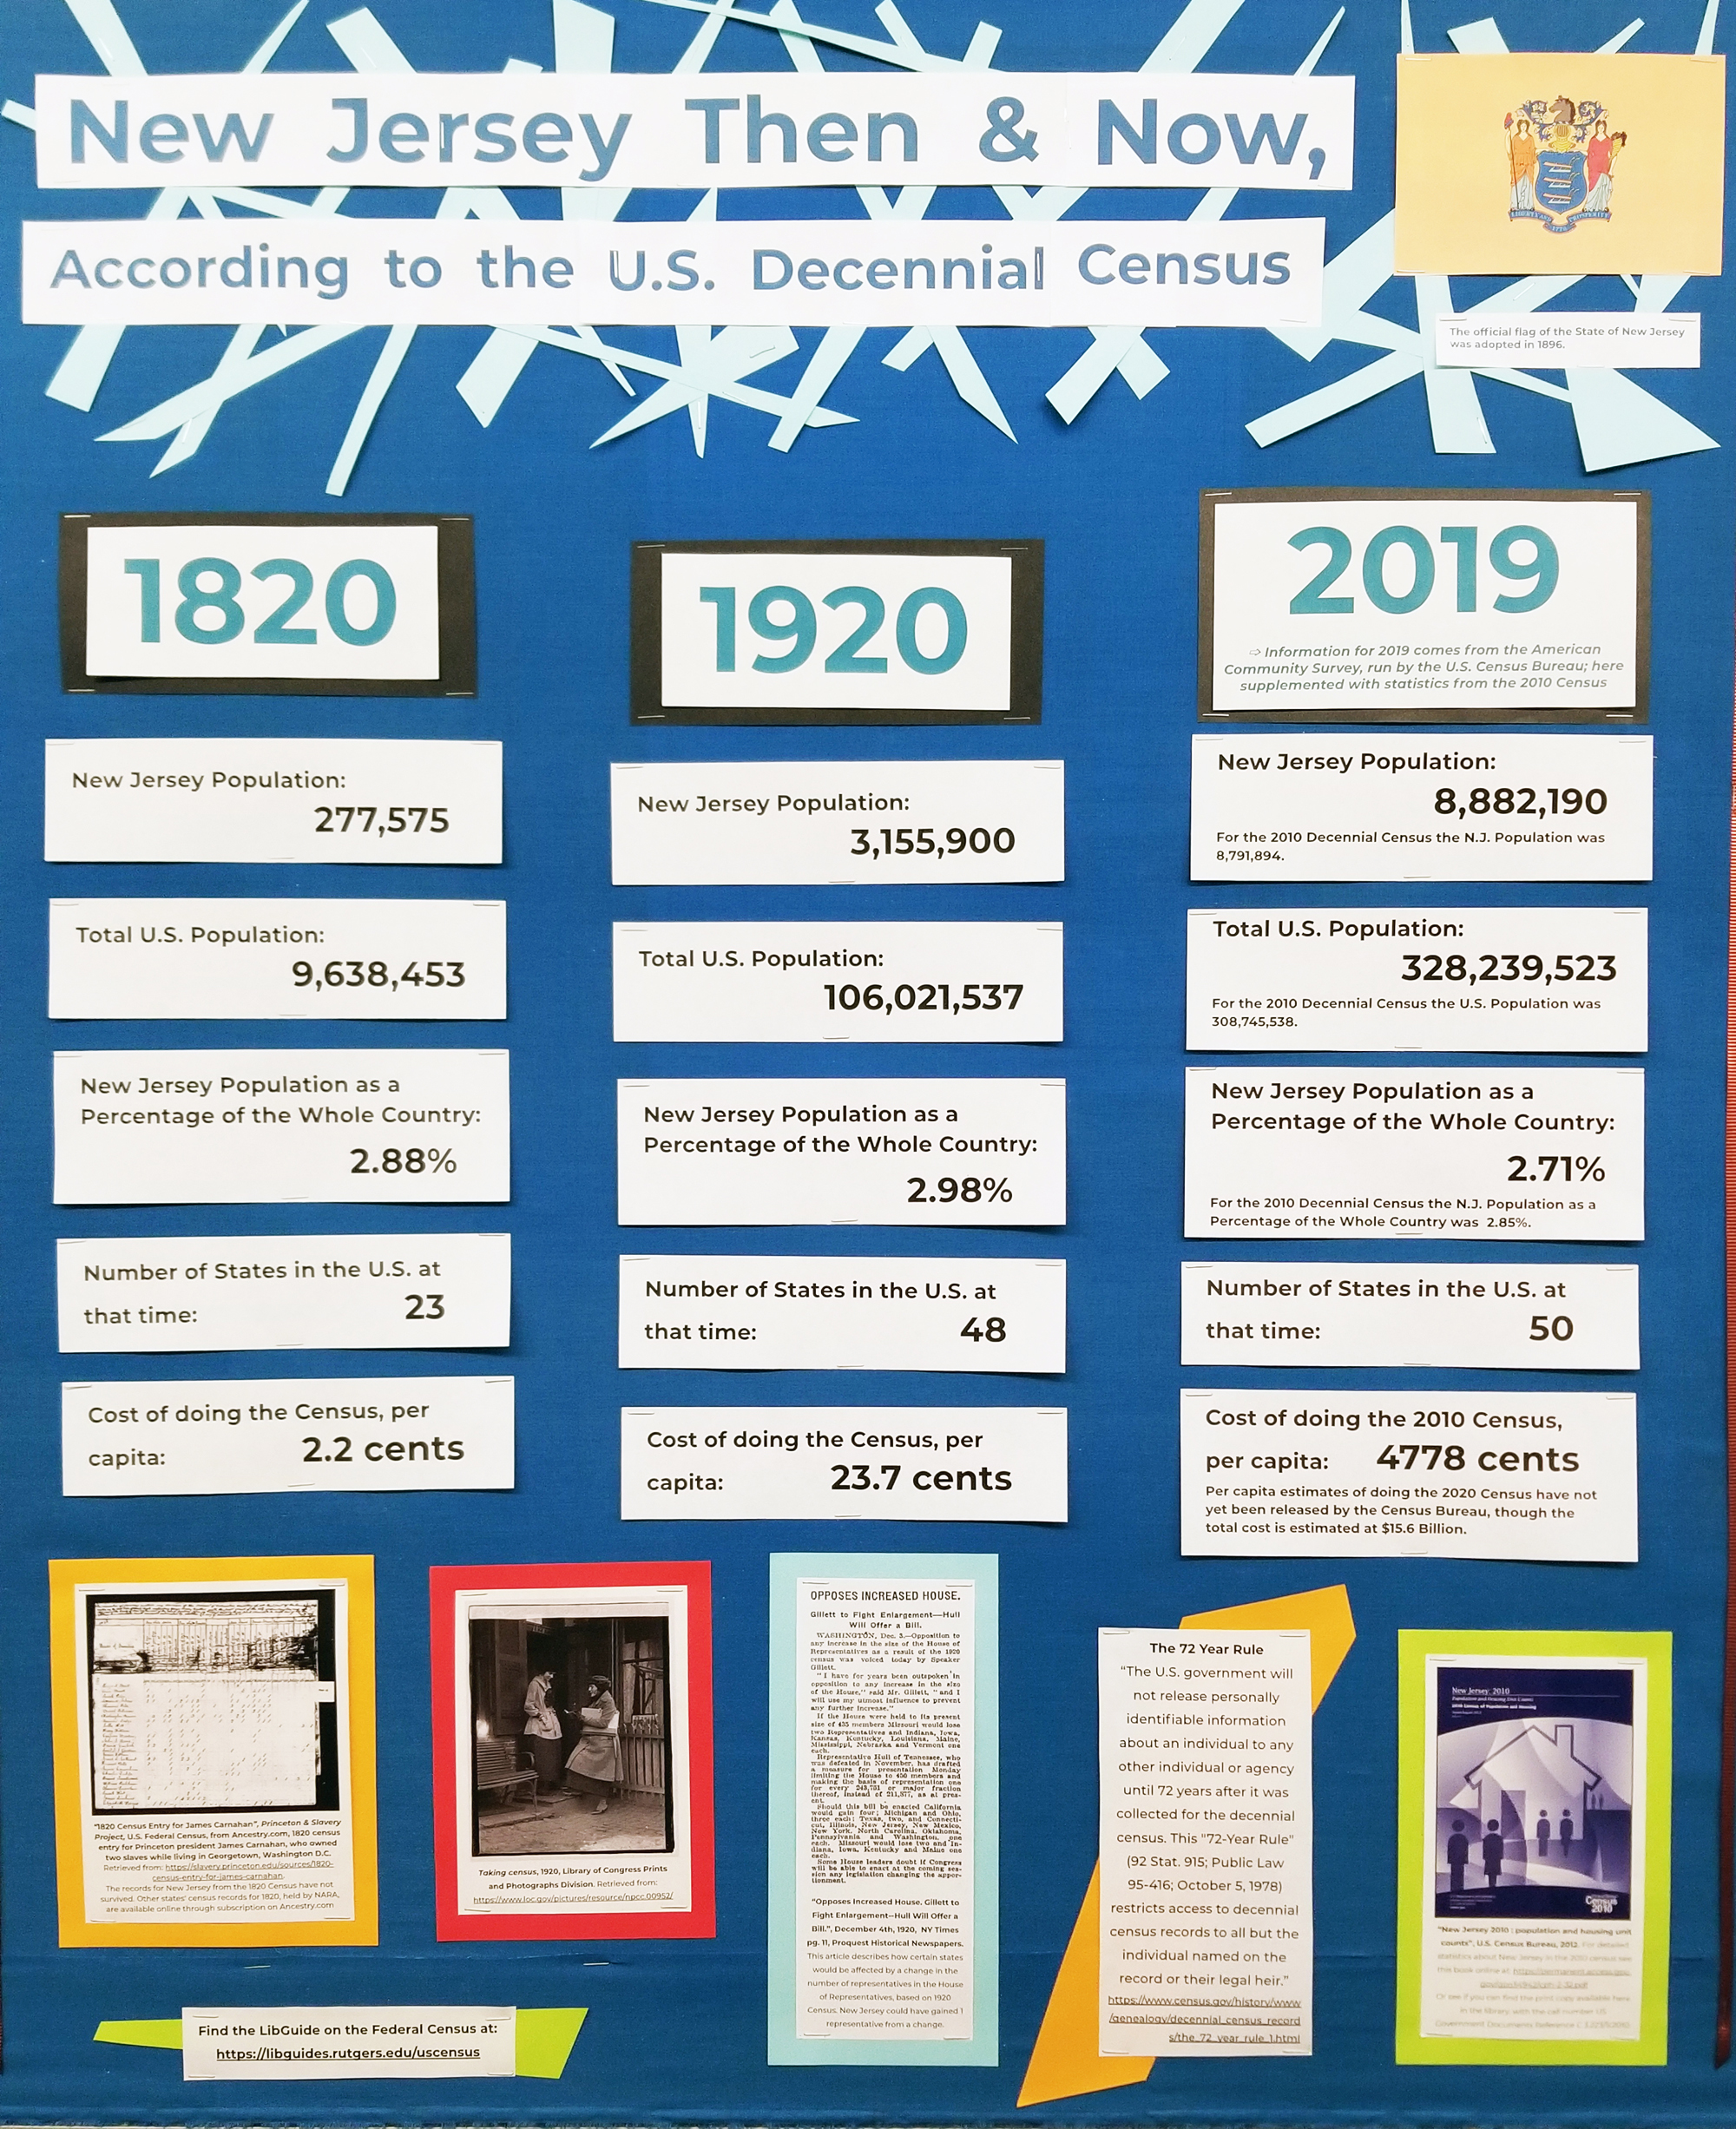 Bulletin board section on New Jersey in 1820, 1920, and 2019